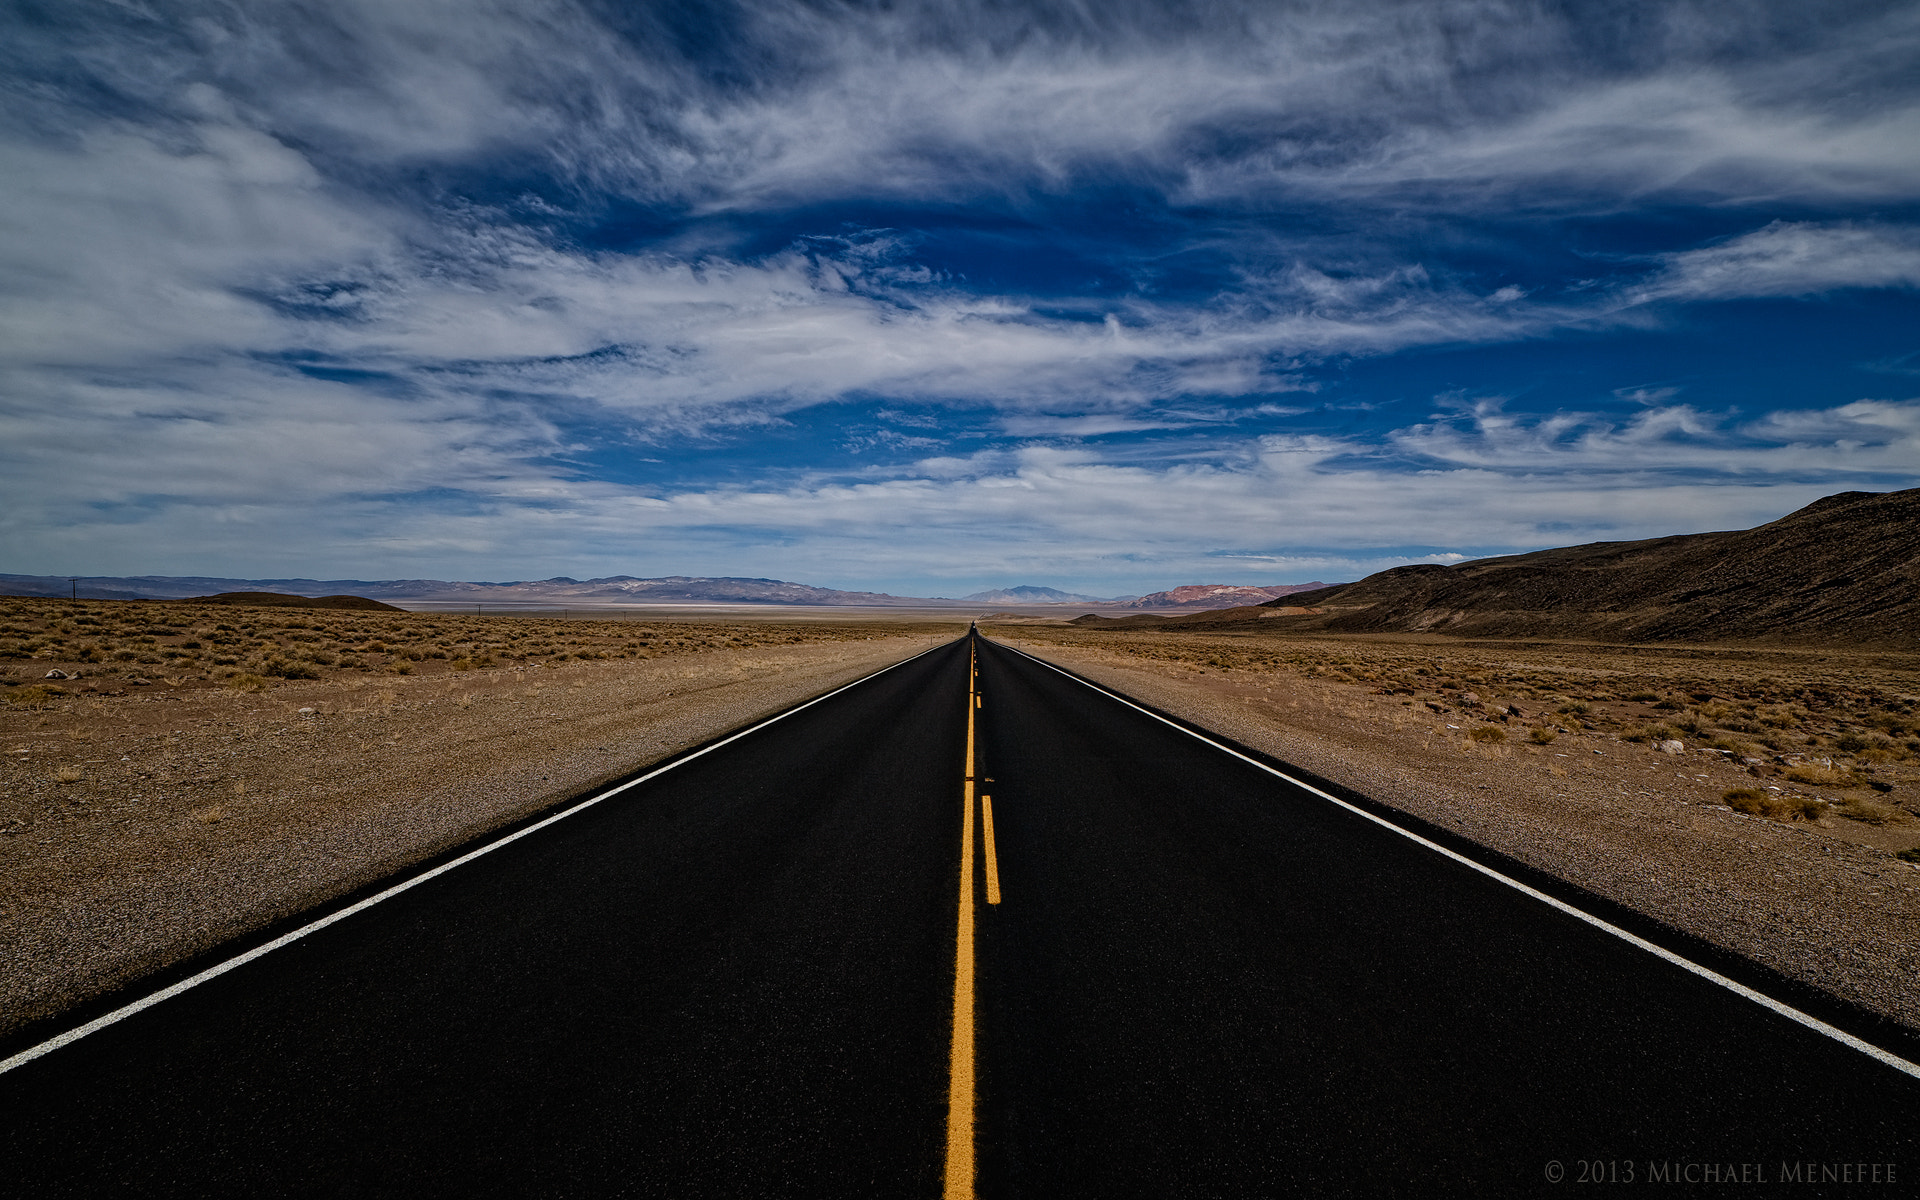 Photograph Vanishing into Nevada's Basin and Range Country by Michael Menefee on 500px